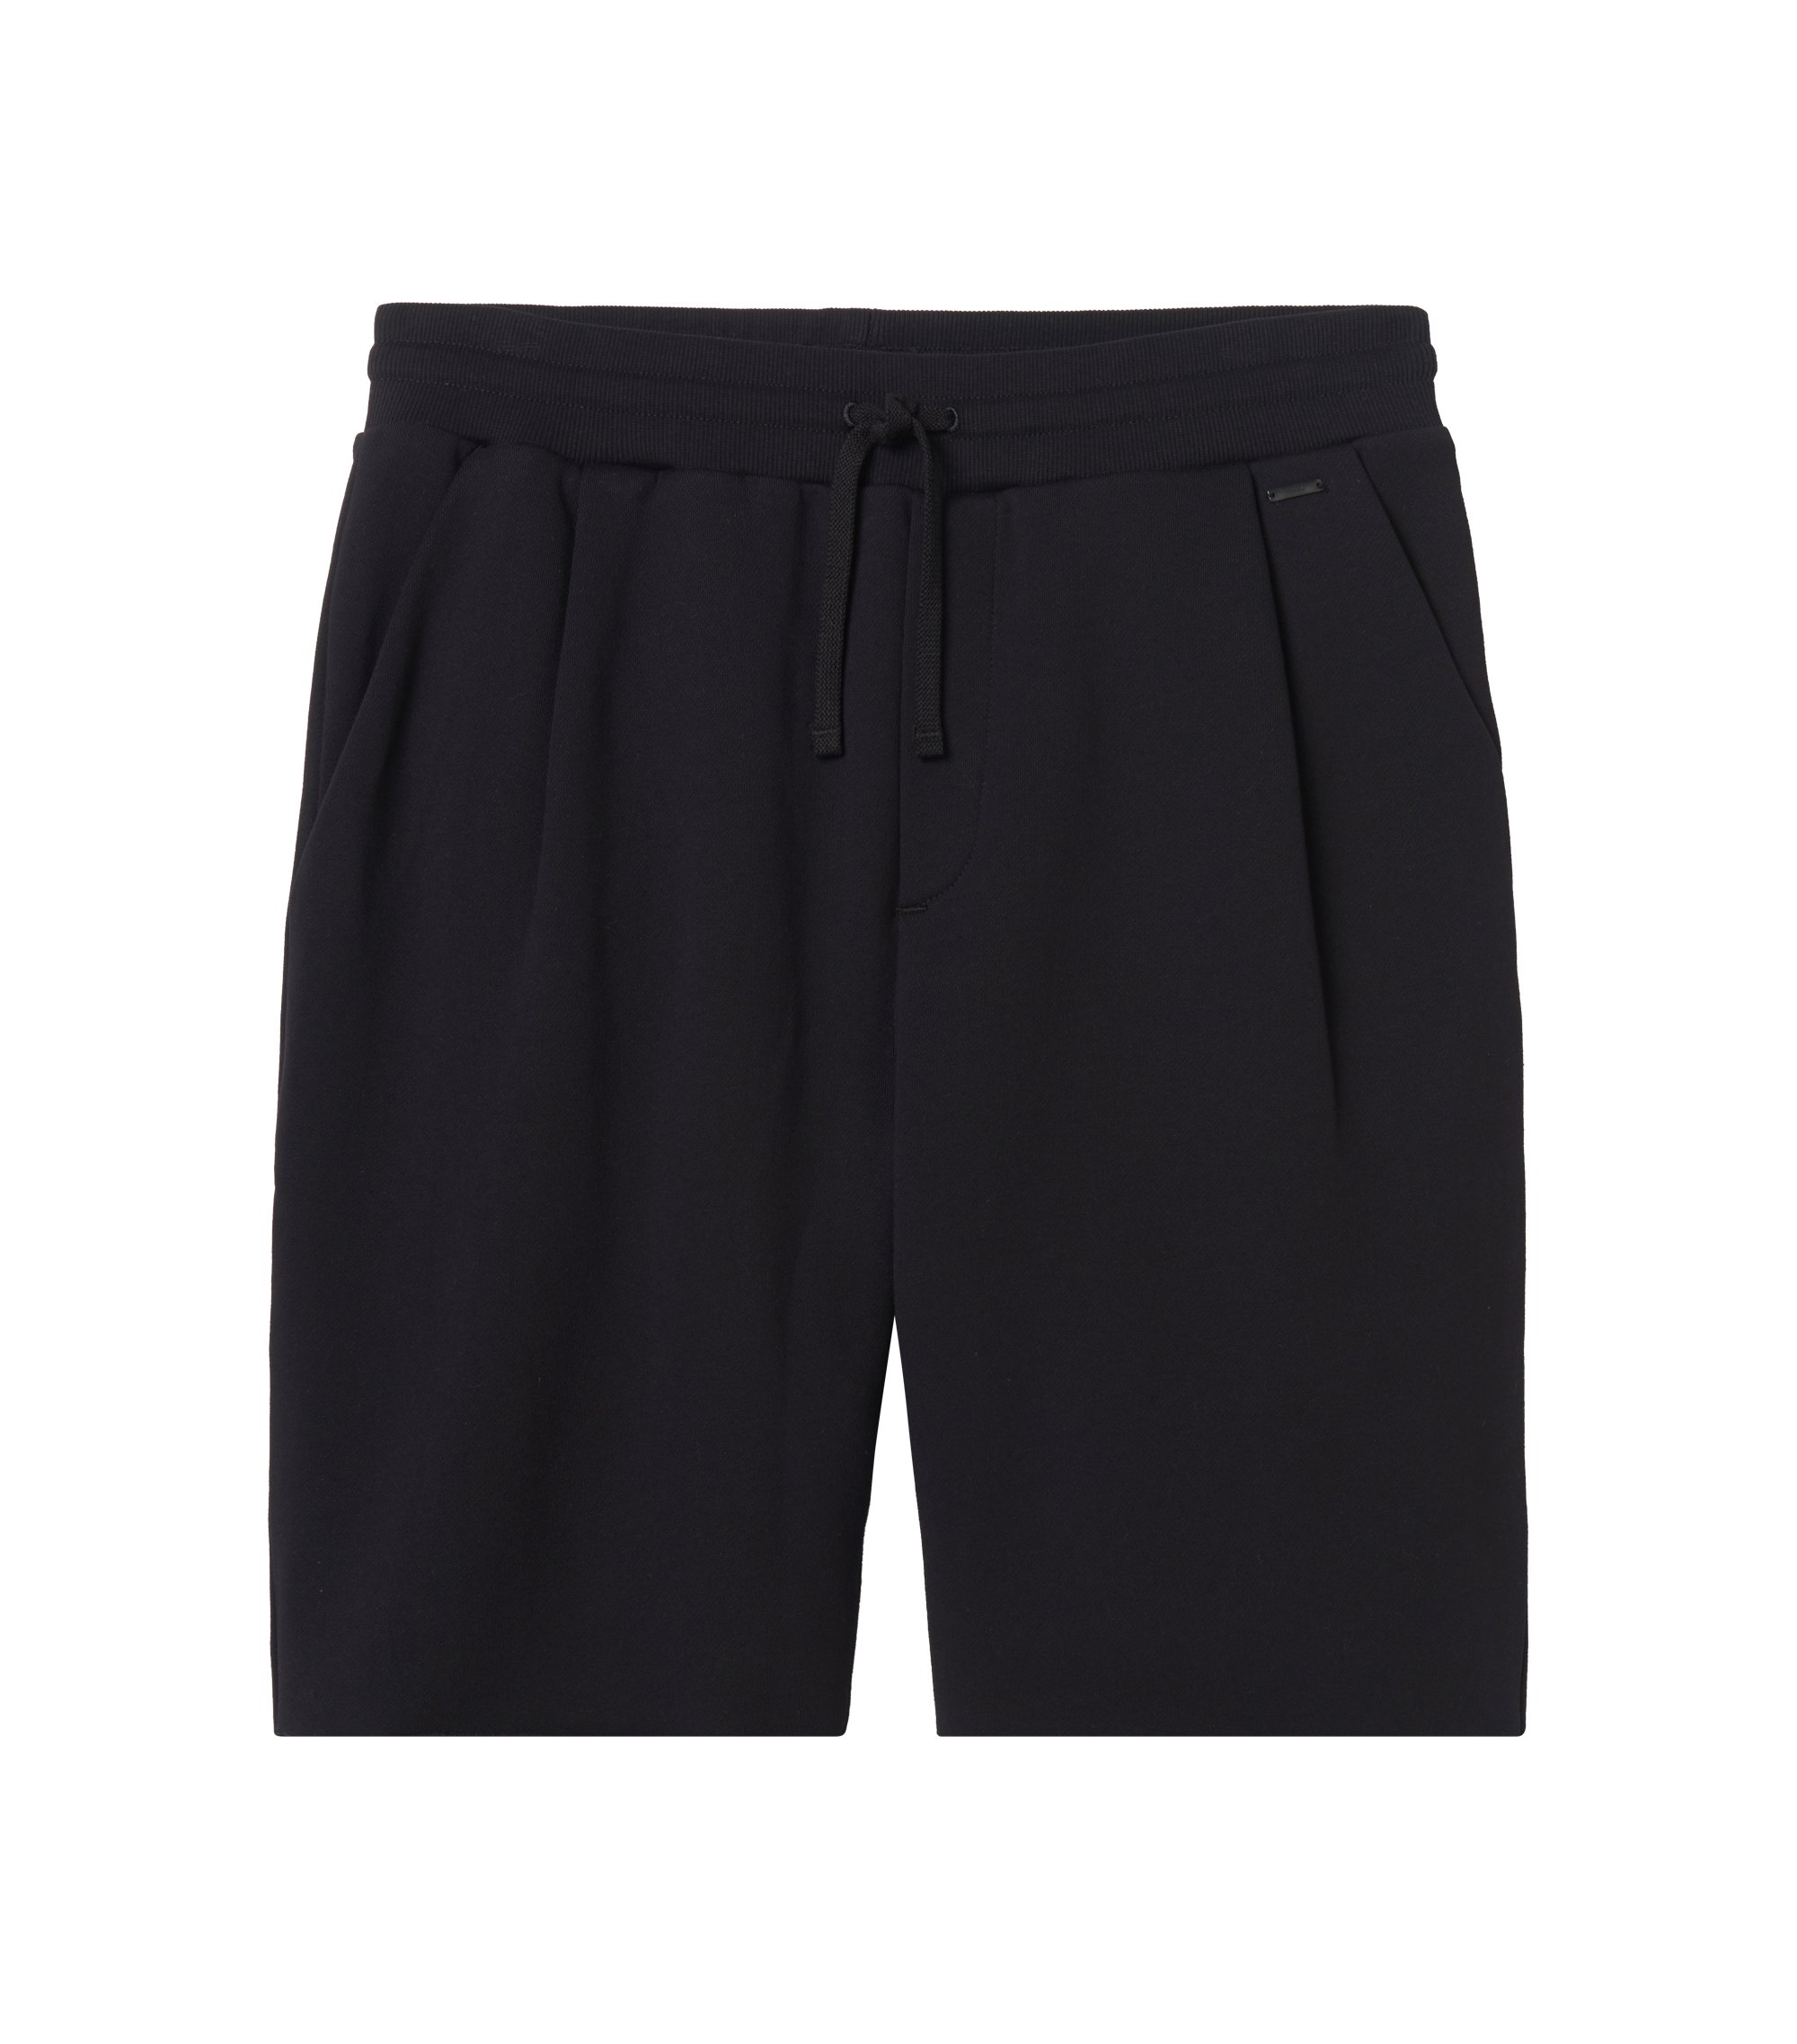 Cotton Short | Desh, Black